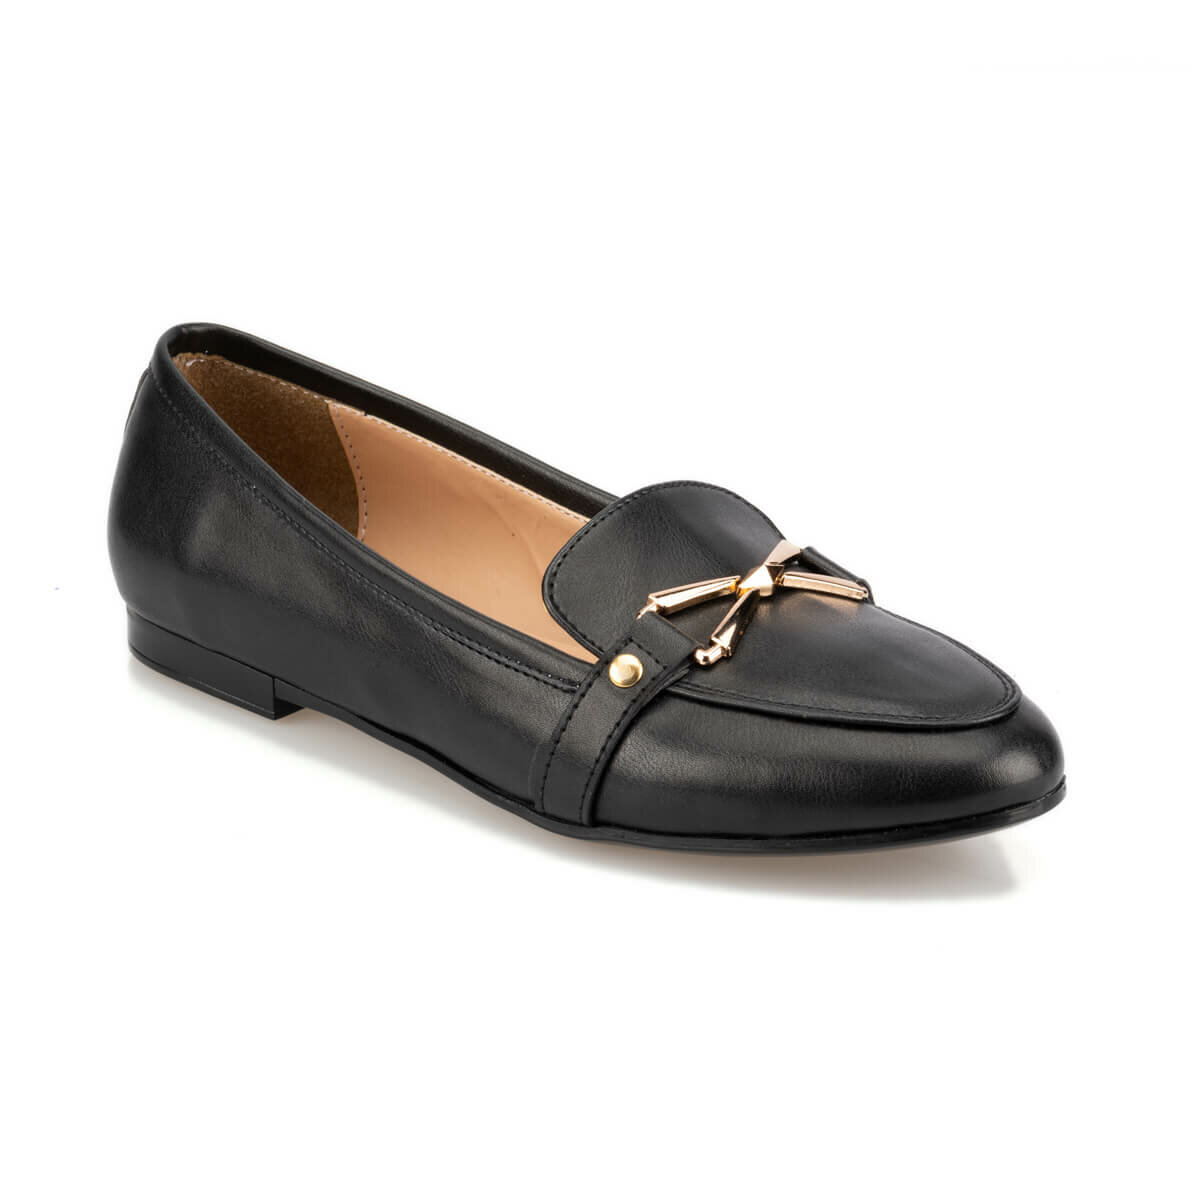 FLO 92.314104.Z Black Women Loafer Shoes Polaris